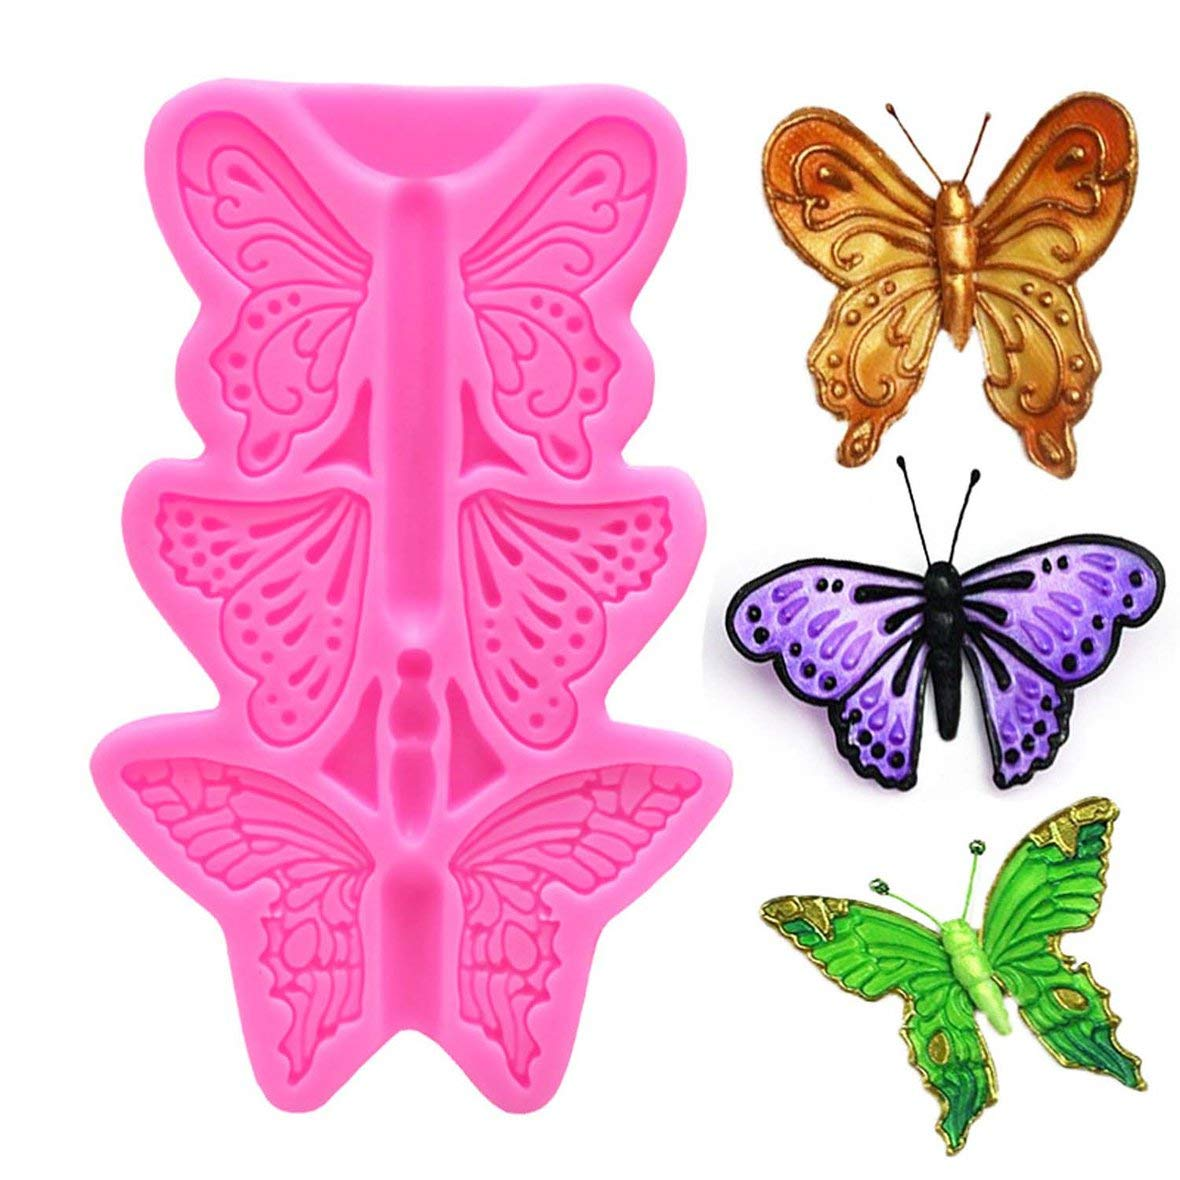 Tivolii Food Grade 3D Fondant Cake Silicone Mold Butterfly for Reverse Forming Polymer Clay Chocolate DIY Decoration Tools